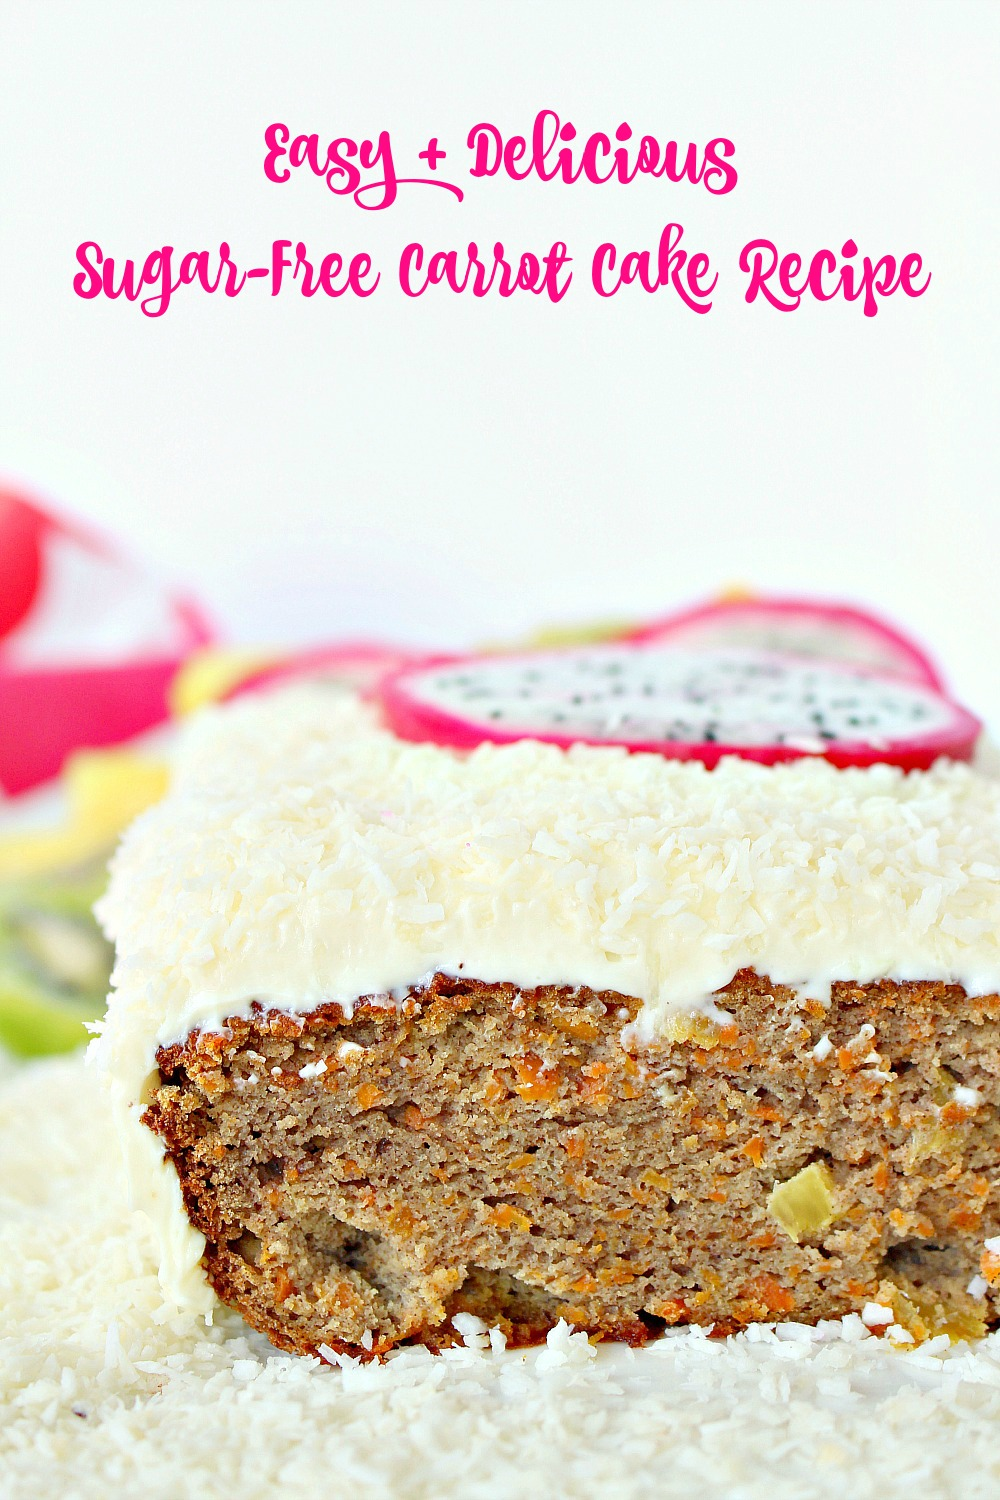 Cake recipes with stevia and brown recipe syrup